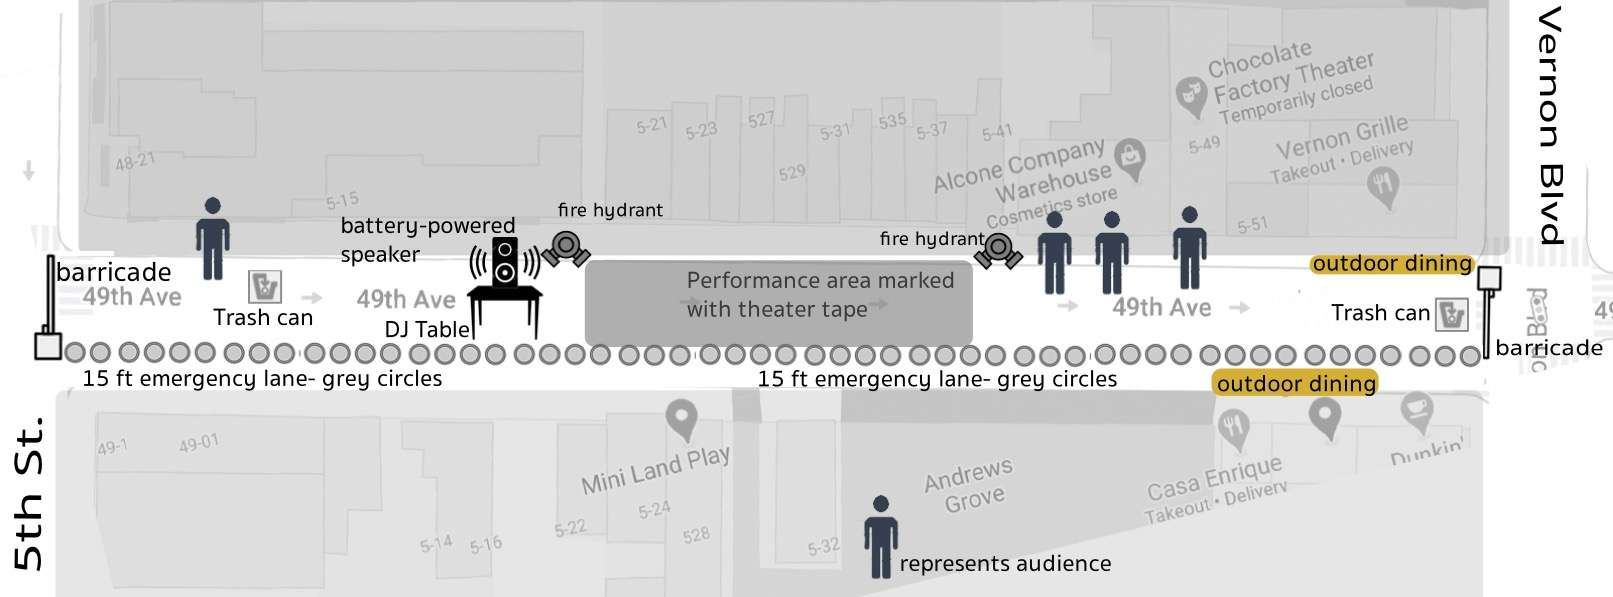 Site Map for event on 49th Ave